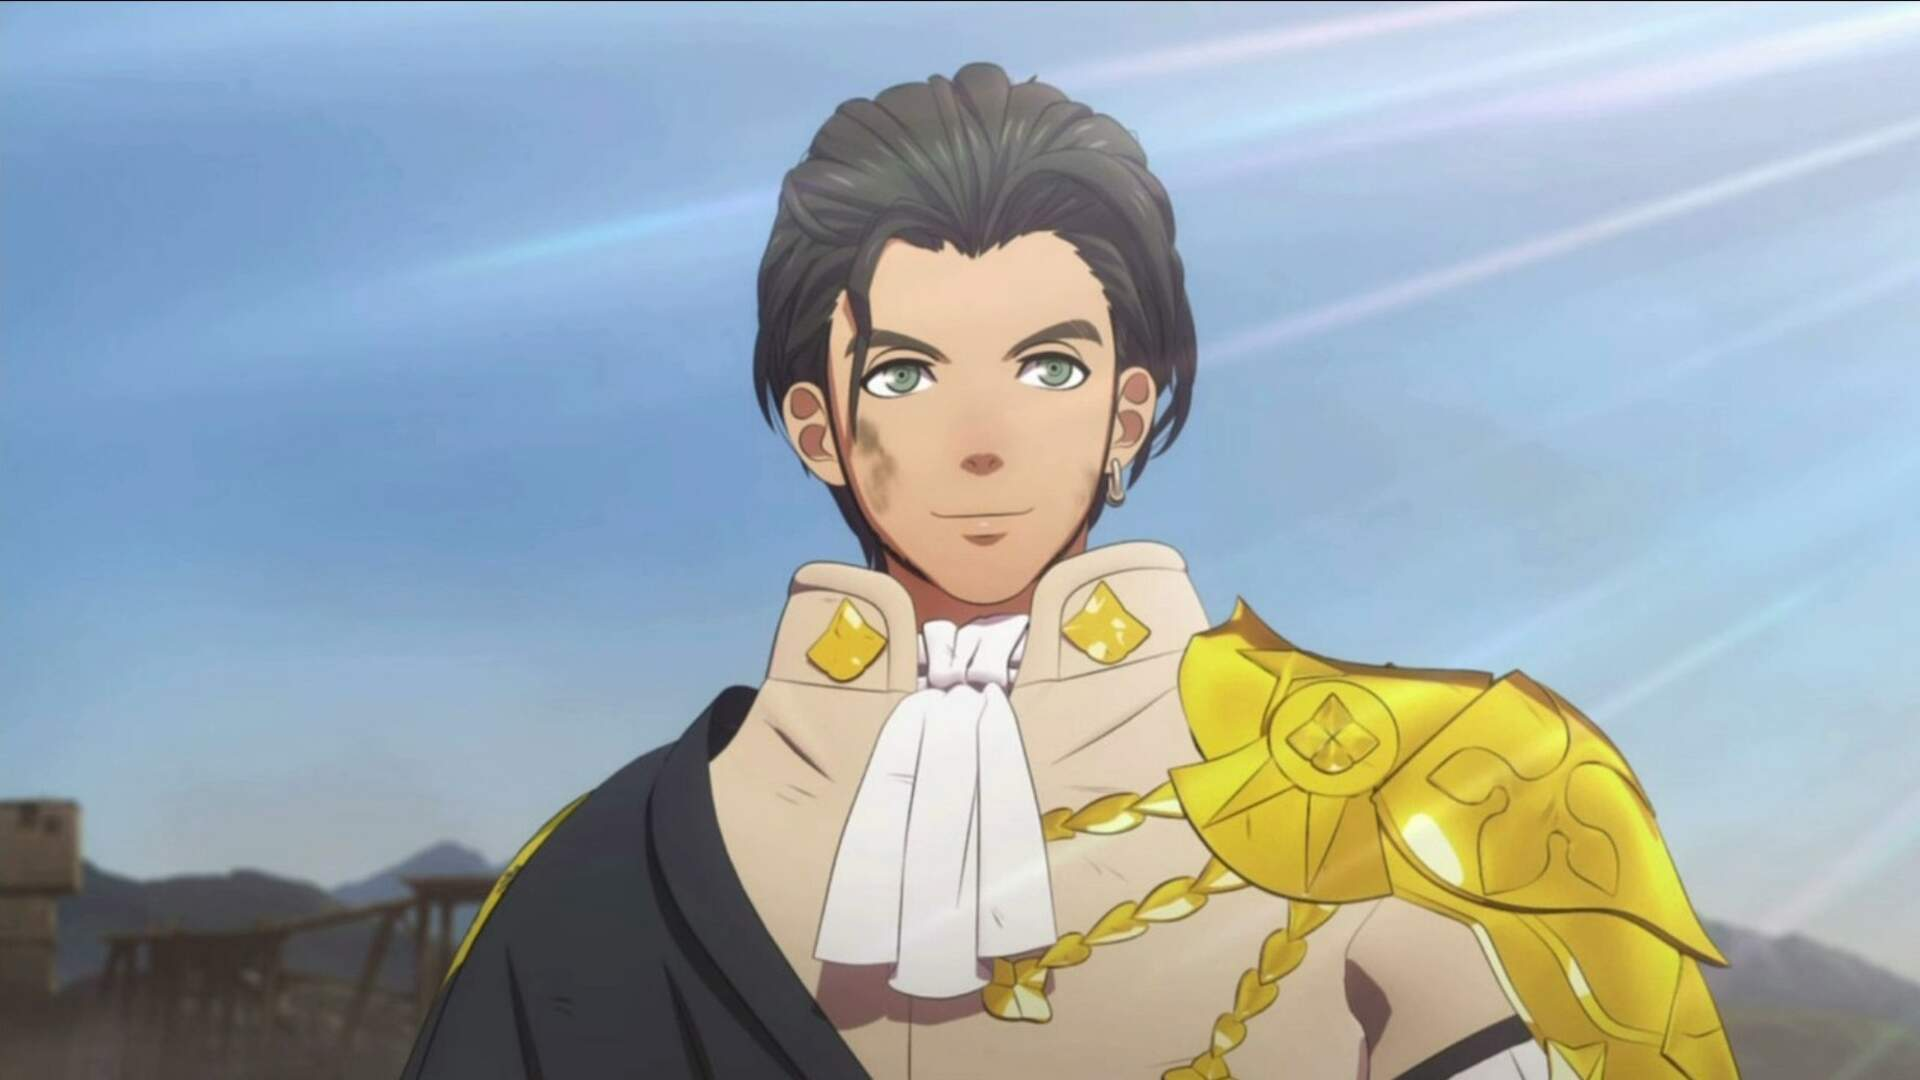 Fire Emblem Three Houses Golden Deer - All Golden Deer Characters and Students